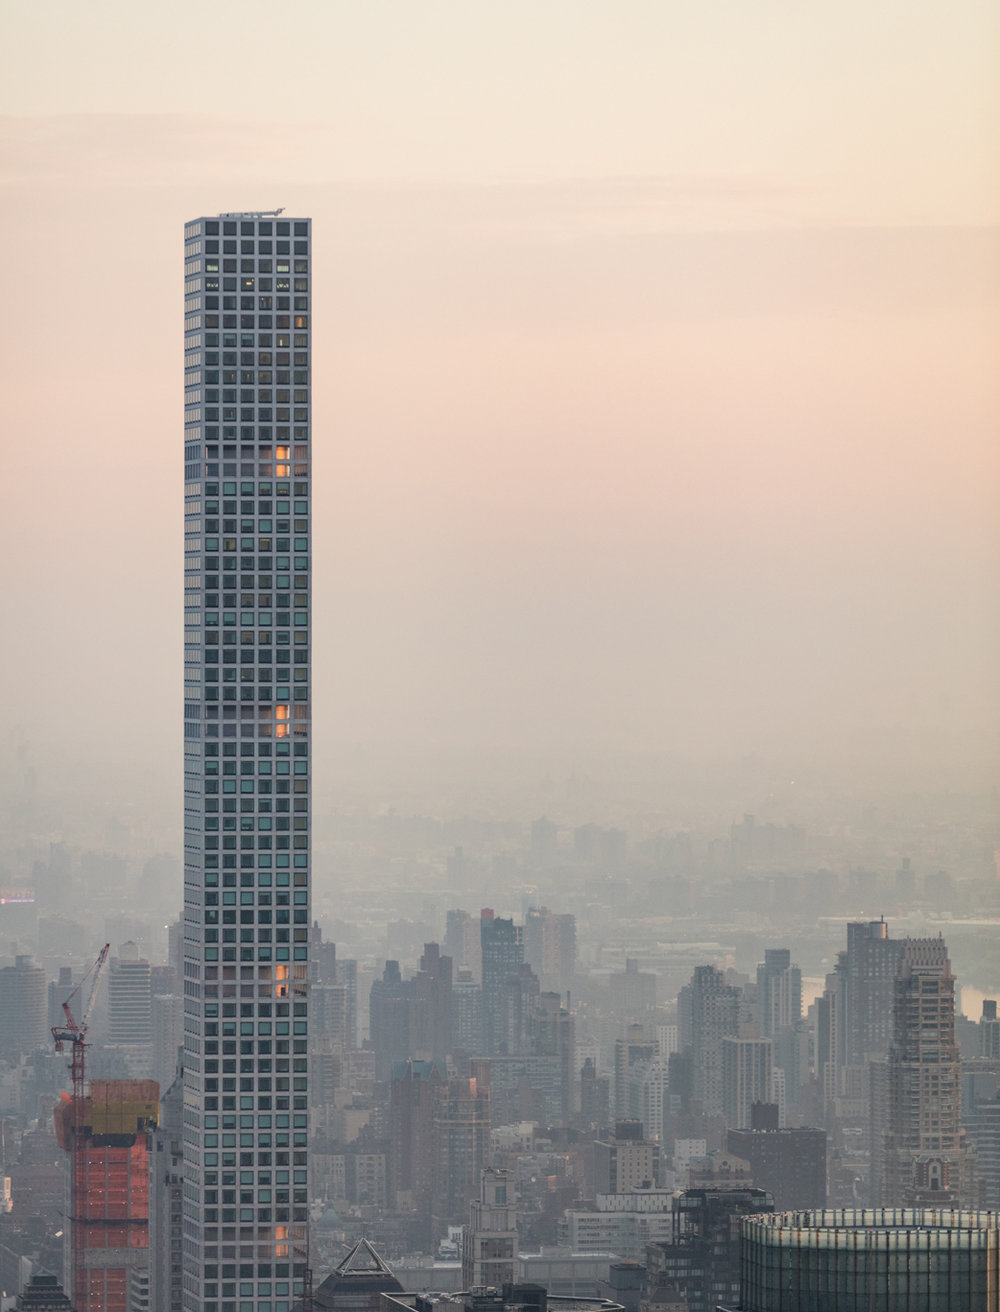 432 Park Ave, NYC